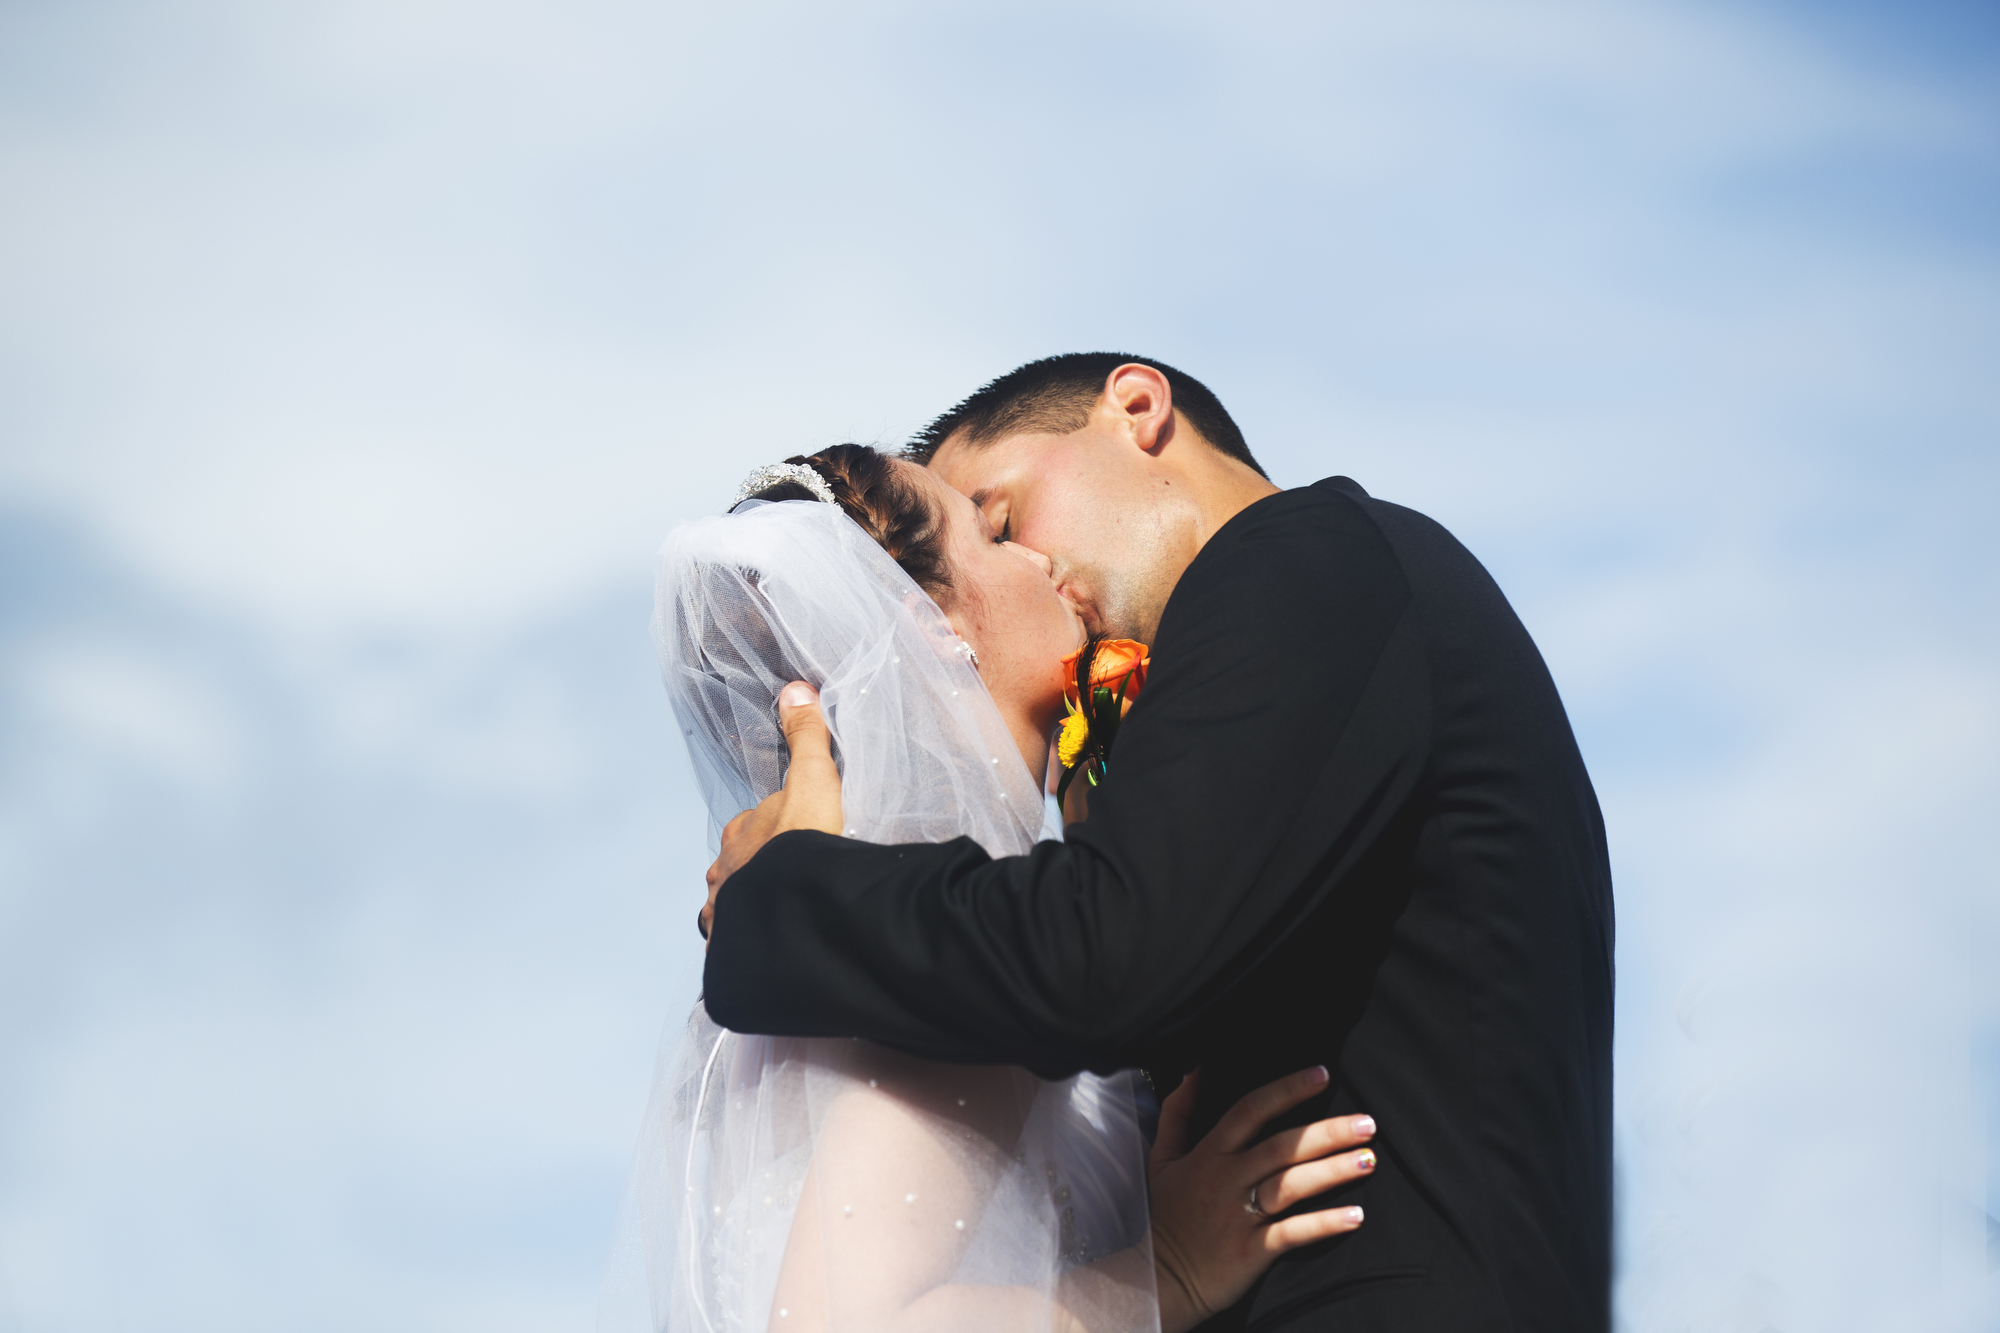 A wedding, engagement, love, newlywed image of a bride in her wedding dress, kissing the groom -taken by Miami Wedding Photographer, Javier Edwards of El Roi Photo, in Miami, Florida, for a Miami Wedding